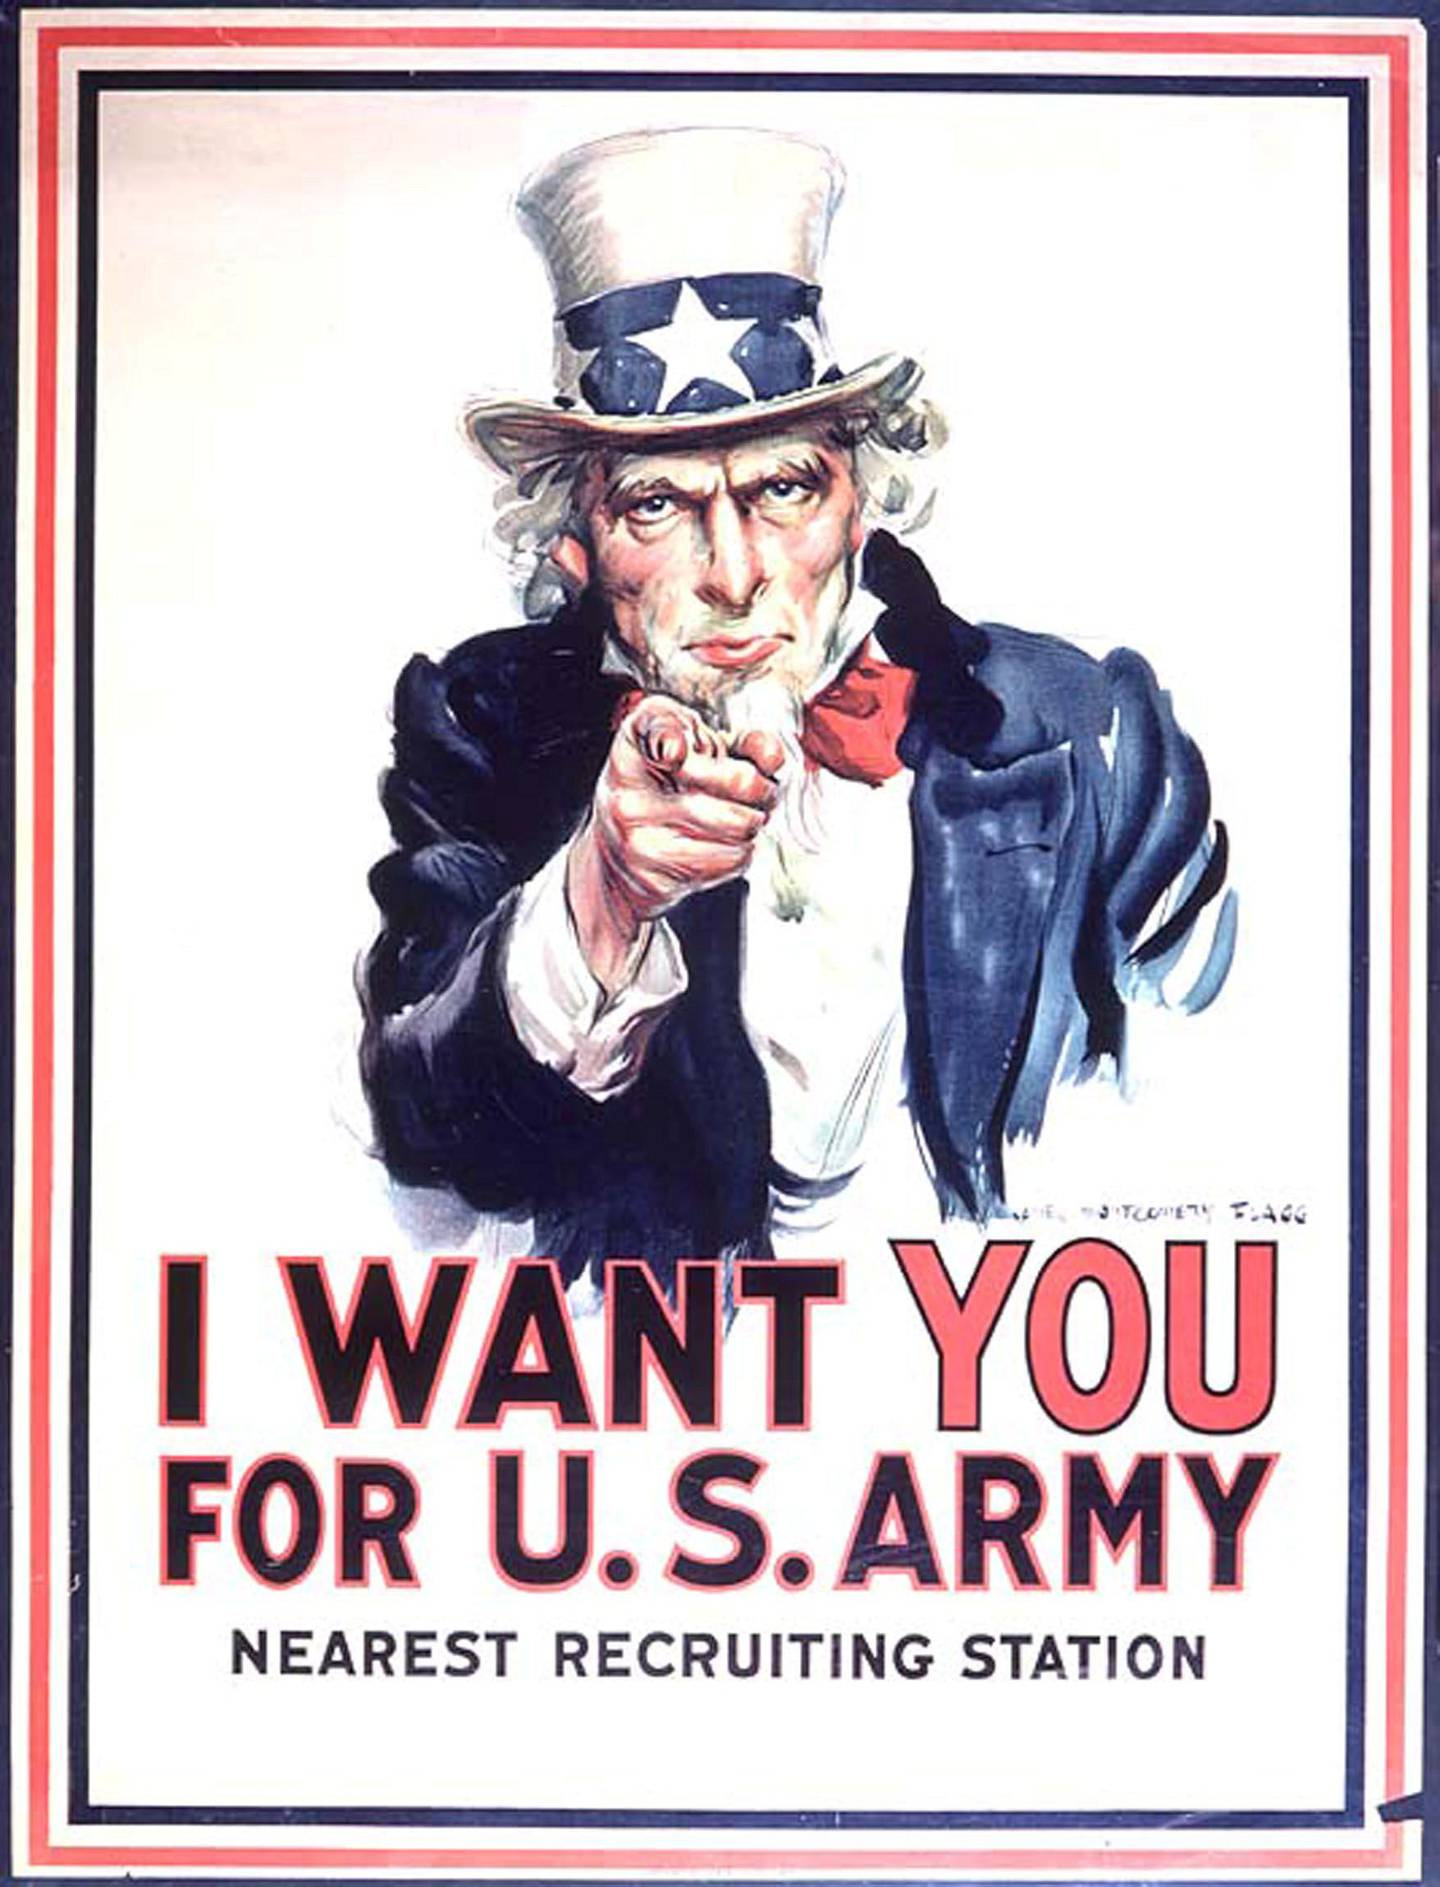 This image obtained 23 March, 2005 shows Uncle Sam on a US Army recruiting poster.The famous poster was used extensively in World War I and World War II to attract recruits. The US Army expects to fall short of its recruiting goals for March and April and plans an appeal to patriotism to blunt the effects of the war in Iraq on attitudes toward military service, Army Secretary Francis Harvey said 23 March, 2005. The active army fell short of its monthly recruiting goal for the first time in five years in February, attracting only 94 percent of expected recruits. The army reserve attracted only 90 percent of expected recruits, and the National Guard, only 75 percent. The army's goal is to recruit 80,000 new soldiers by September 30, up from 77,000 in the last fiscal year and 68,000 in fiscal year 2003. AFP PHOTO/HO (Photo by STR / HO / AFP)